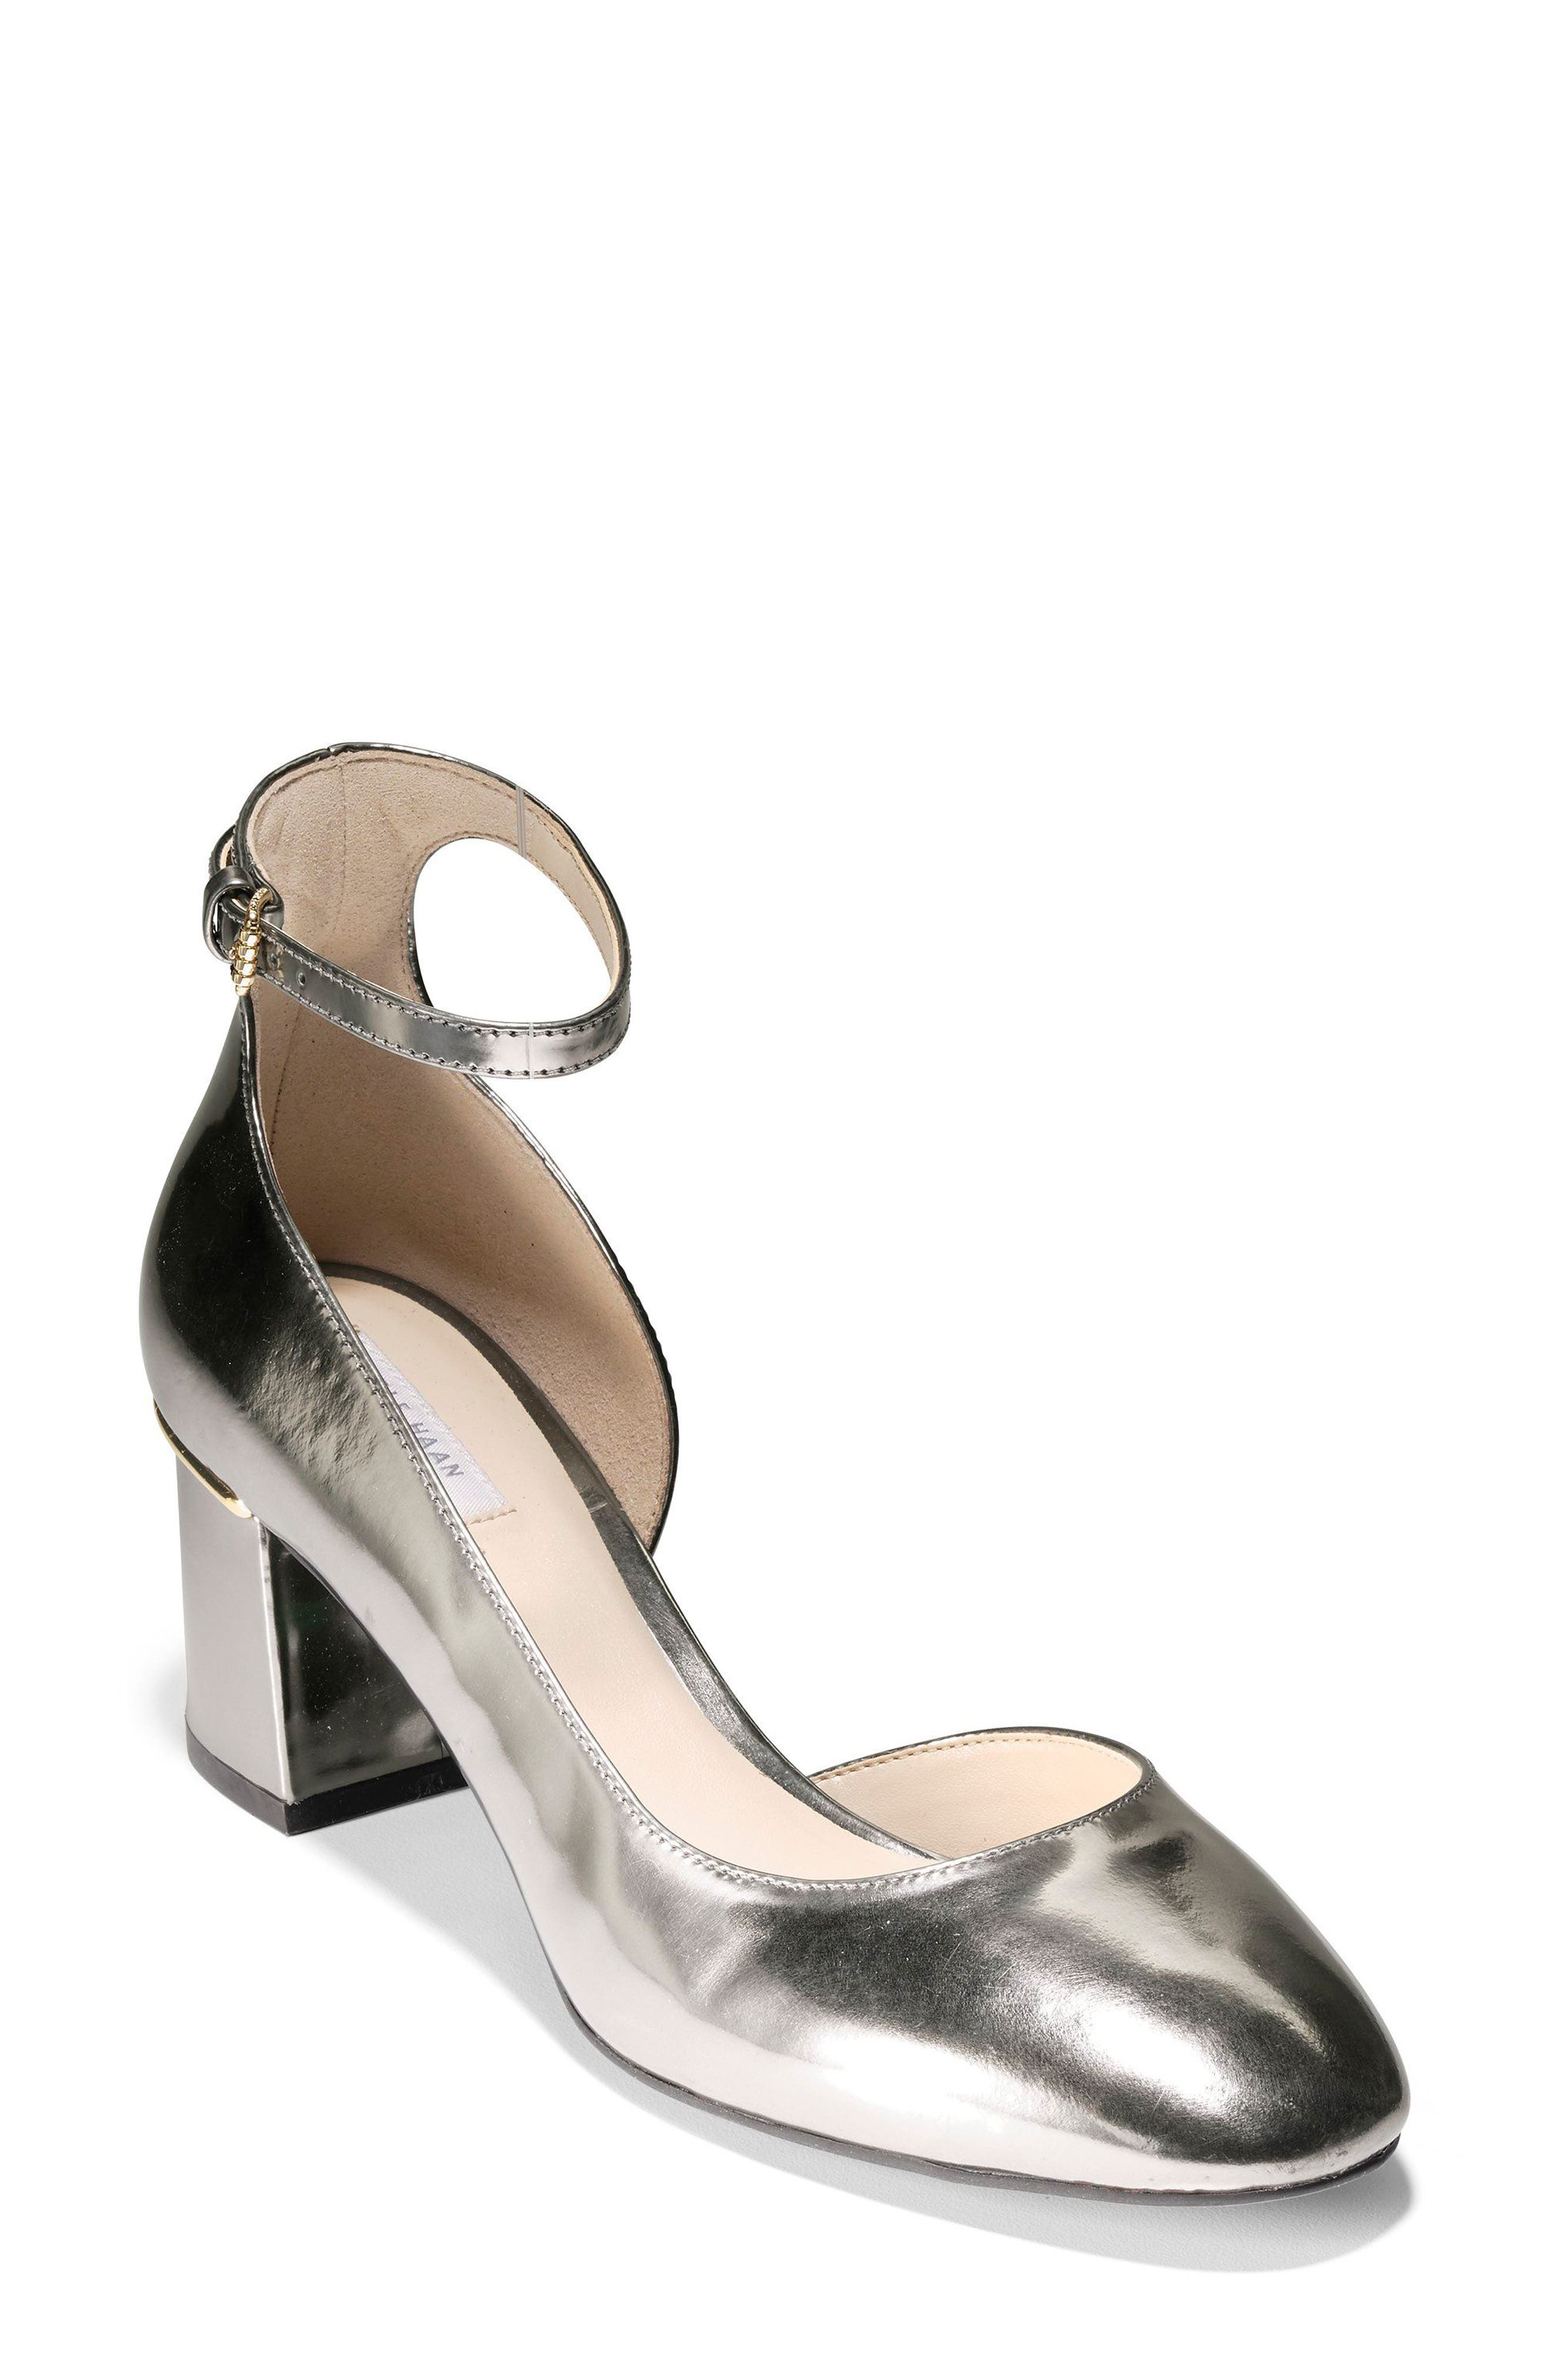 Main Image - Cole Haan Warner Ankle Strap Pump (Women)